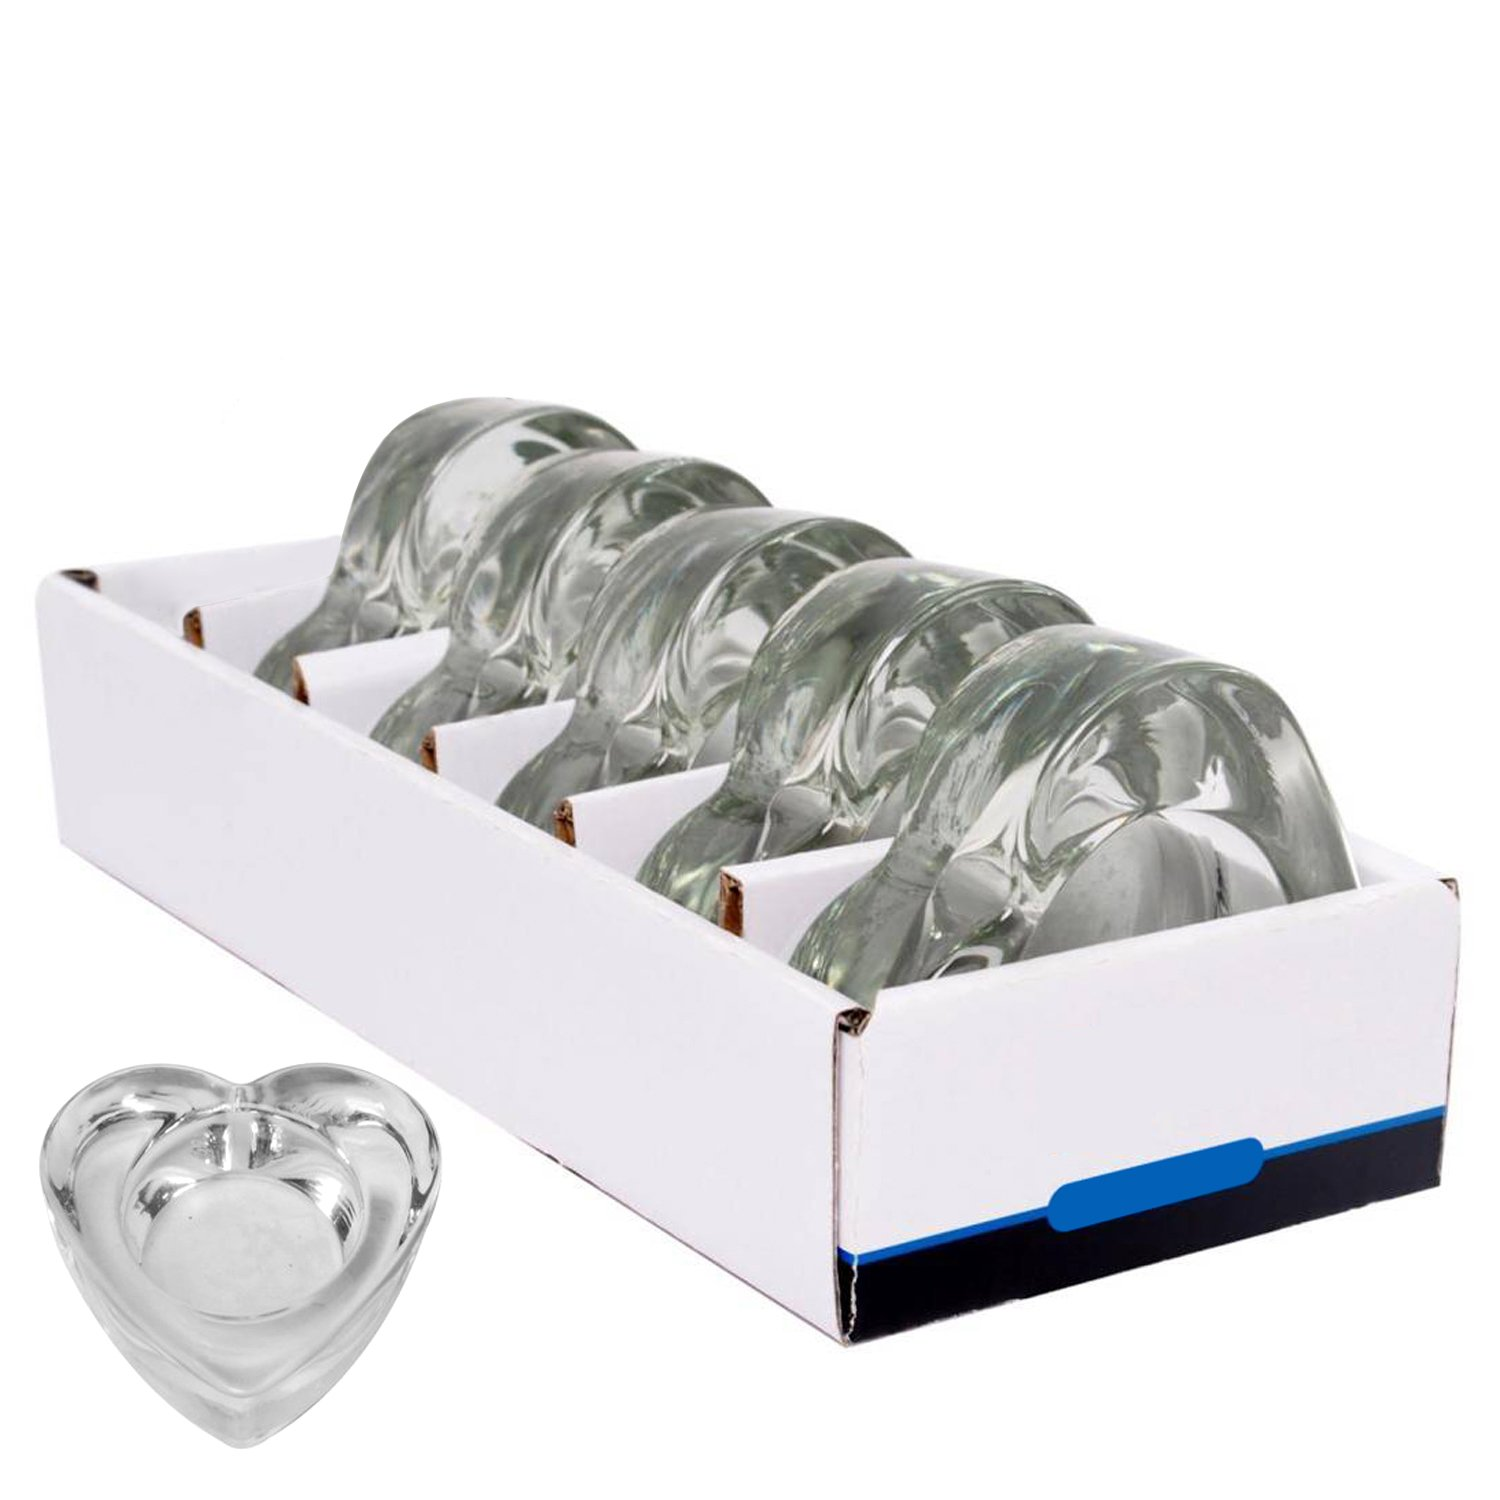 Hosley Set of 24 Chunky Heart Shape Clear Glass Tea Light Holders. Ideal Gift for Weddings, Special Occasions, Party, LED Votive Candle Gardens, Spa, Aromatherapy, Valentine O9